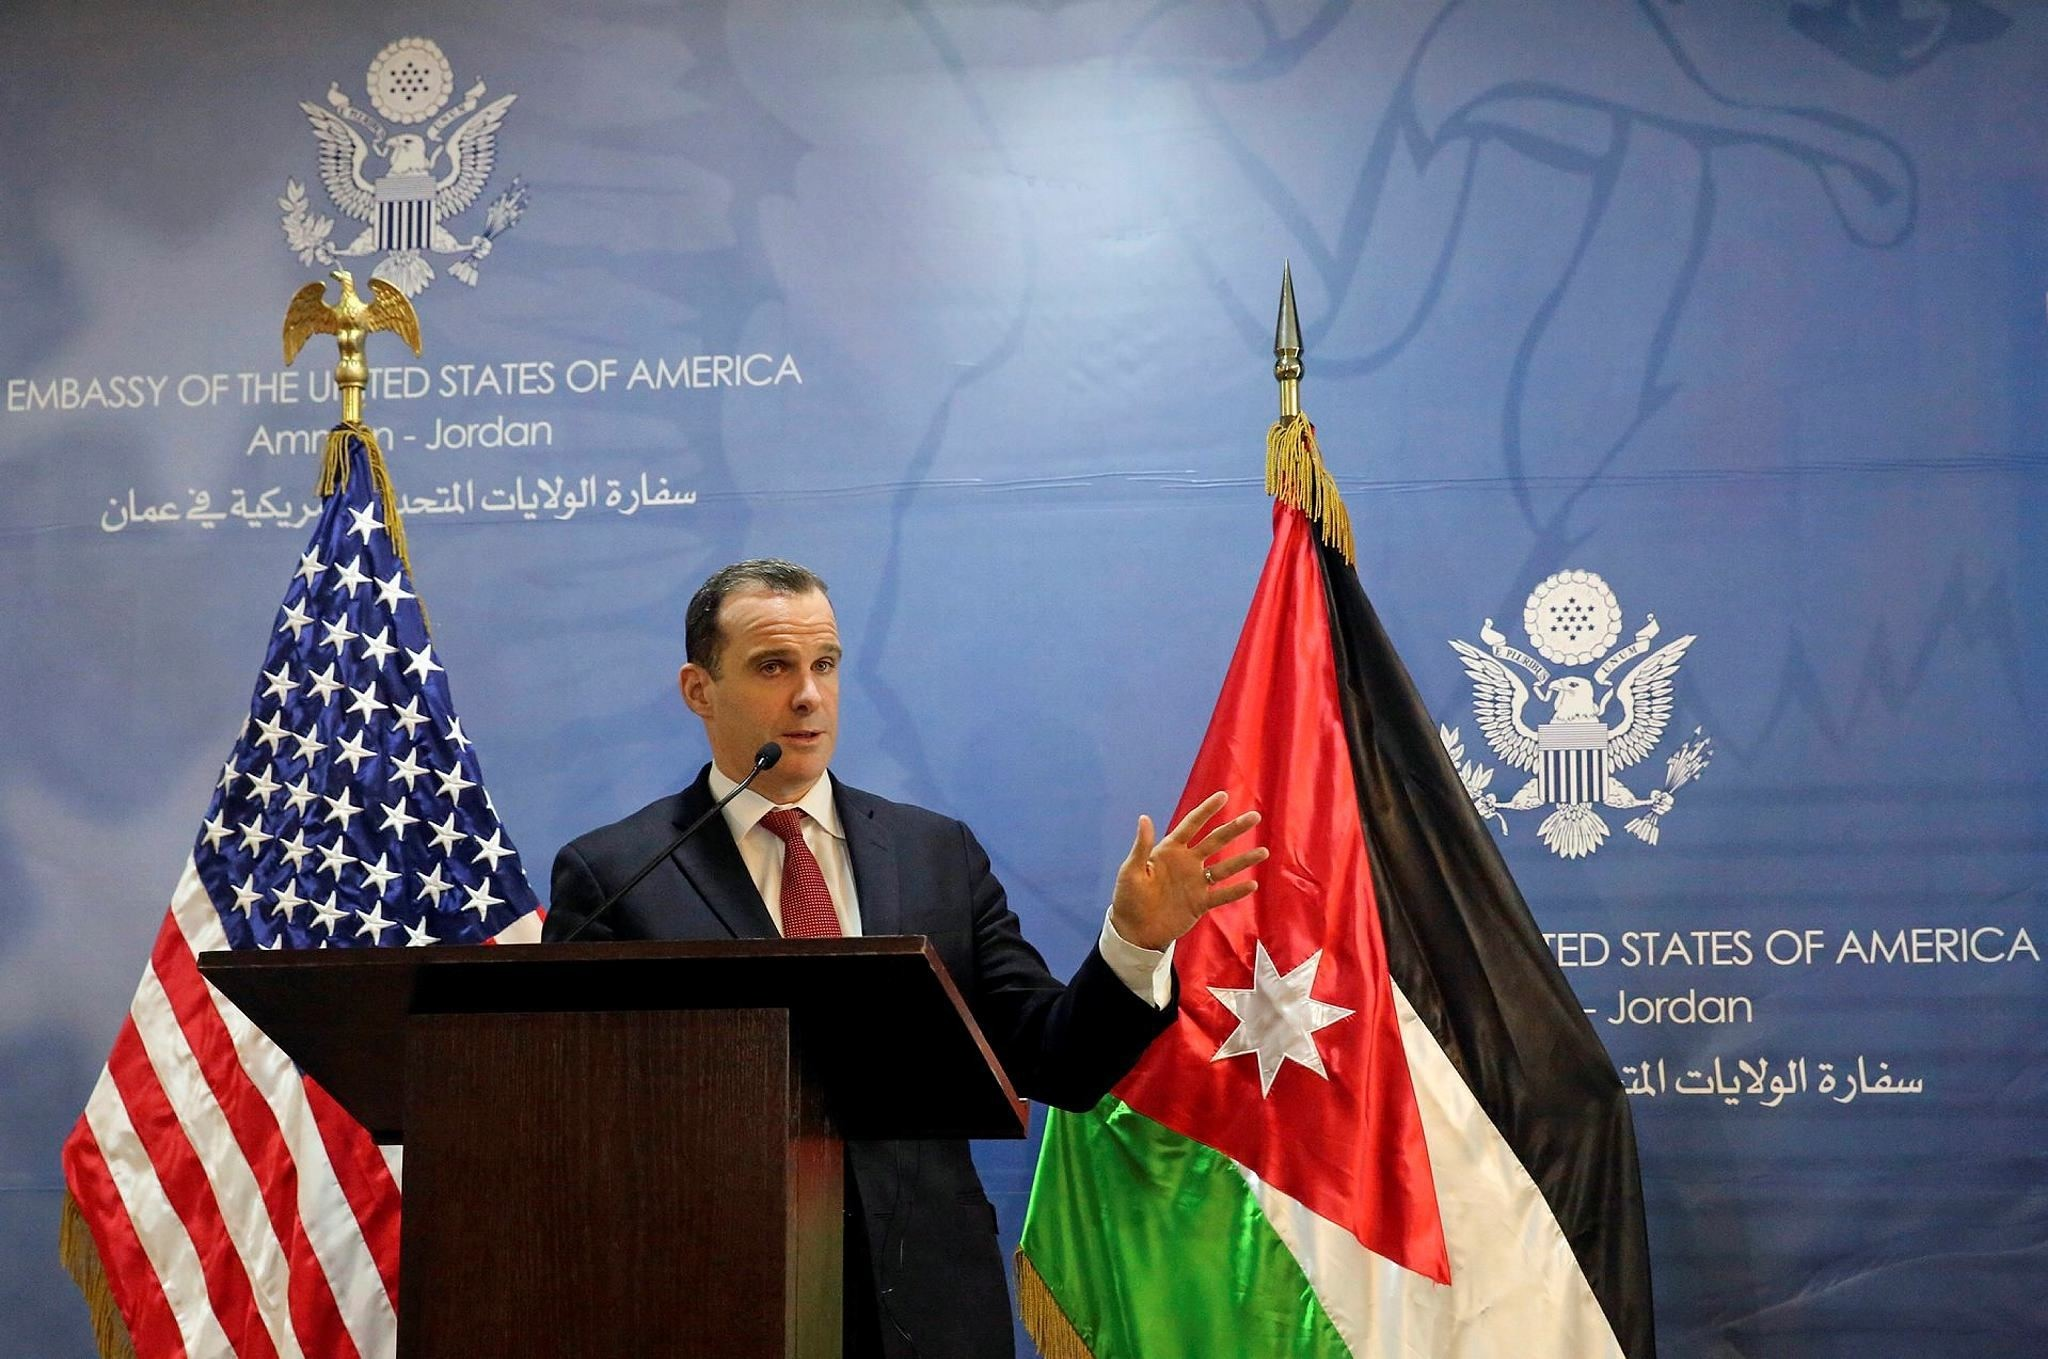 Brett McGurk, the White House envoy to the U.S.-led military coalition against Daesh, speaks during a press conference at the U.S. Embassy in Amman, Jordan, Sunday, Nov. 6, 2016. (AP Photo)